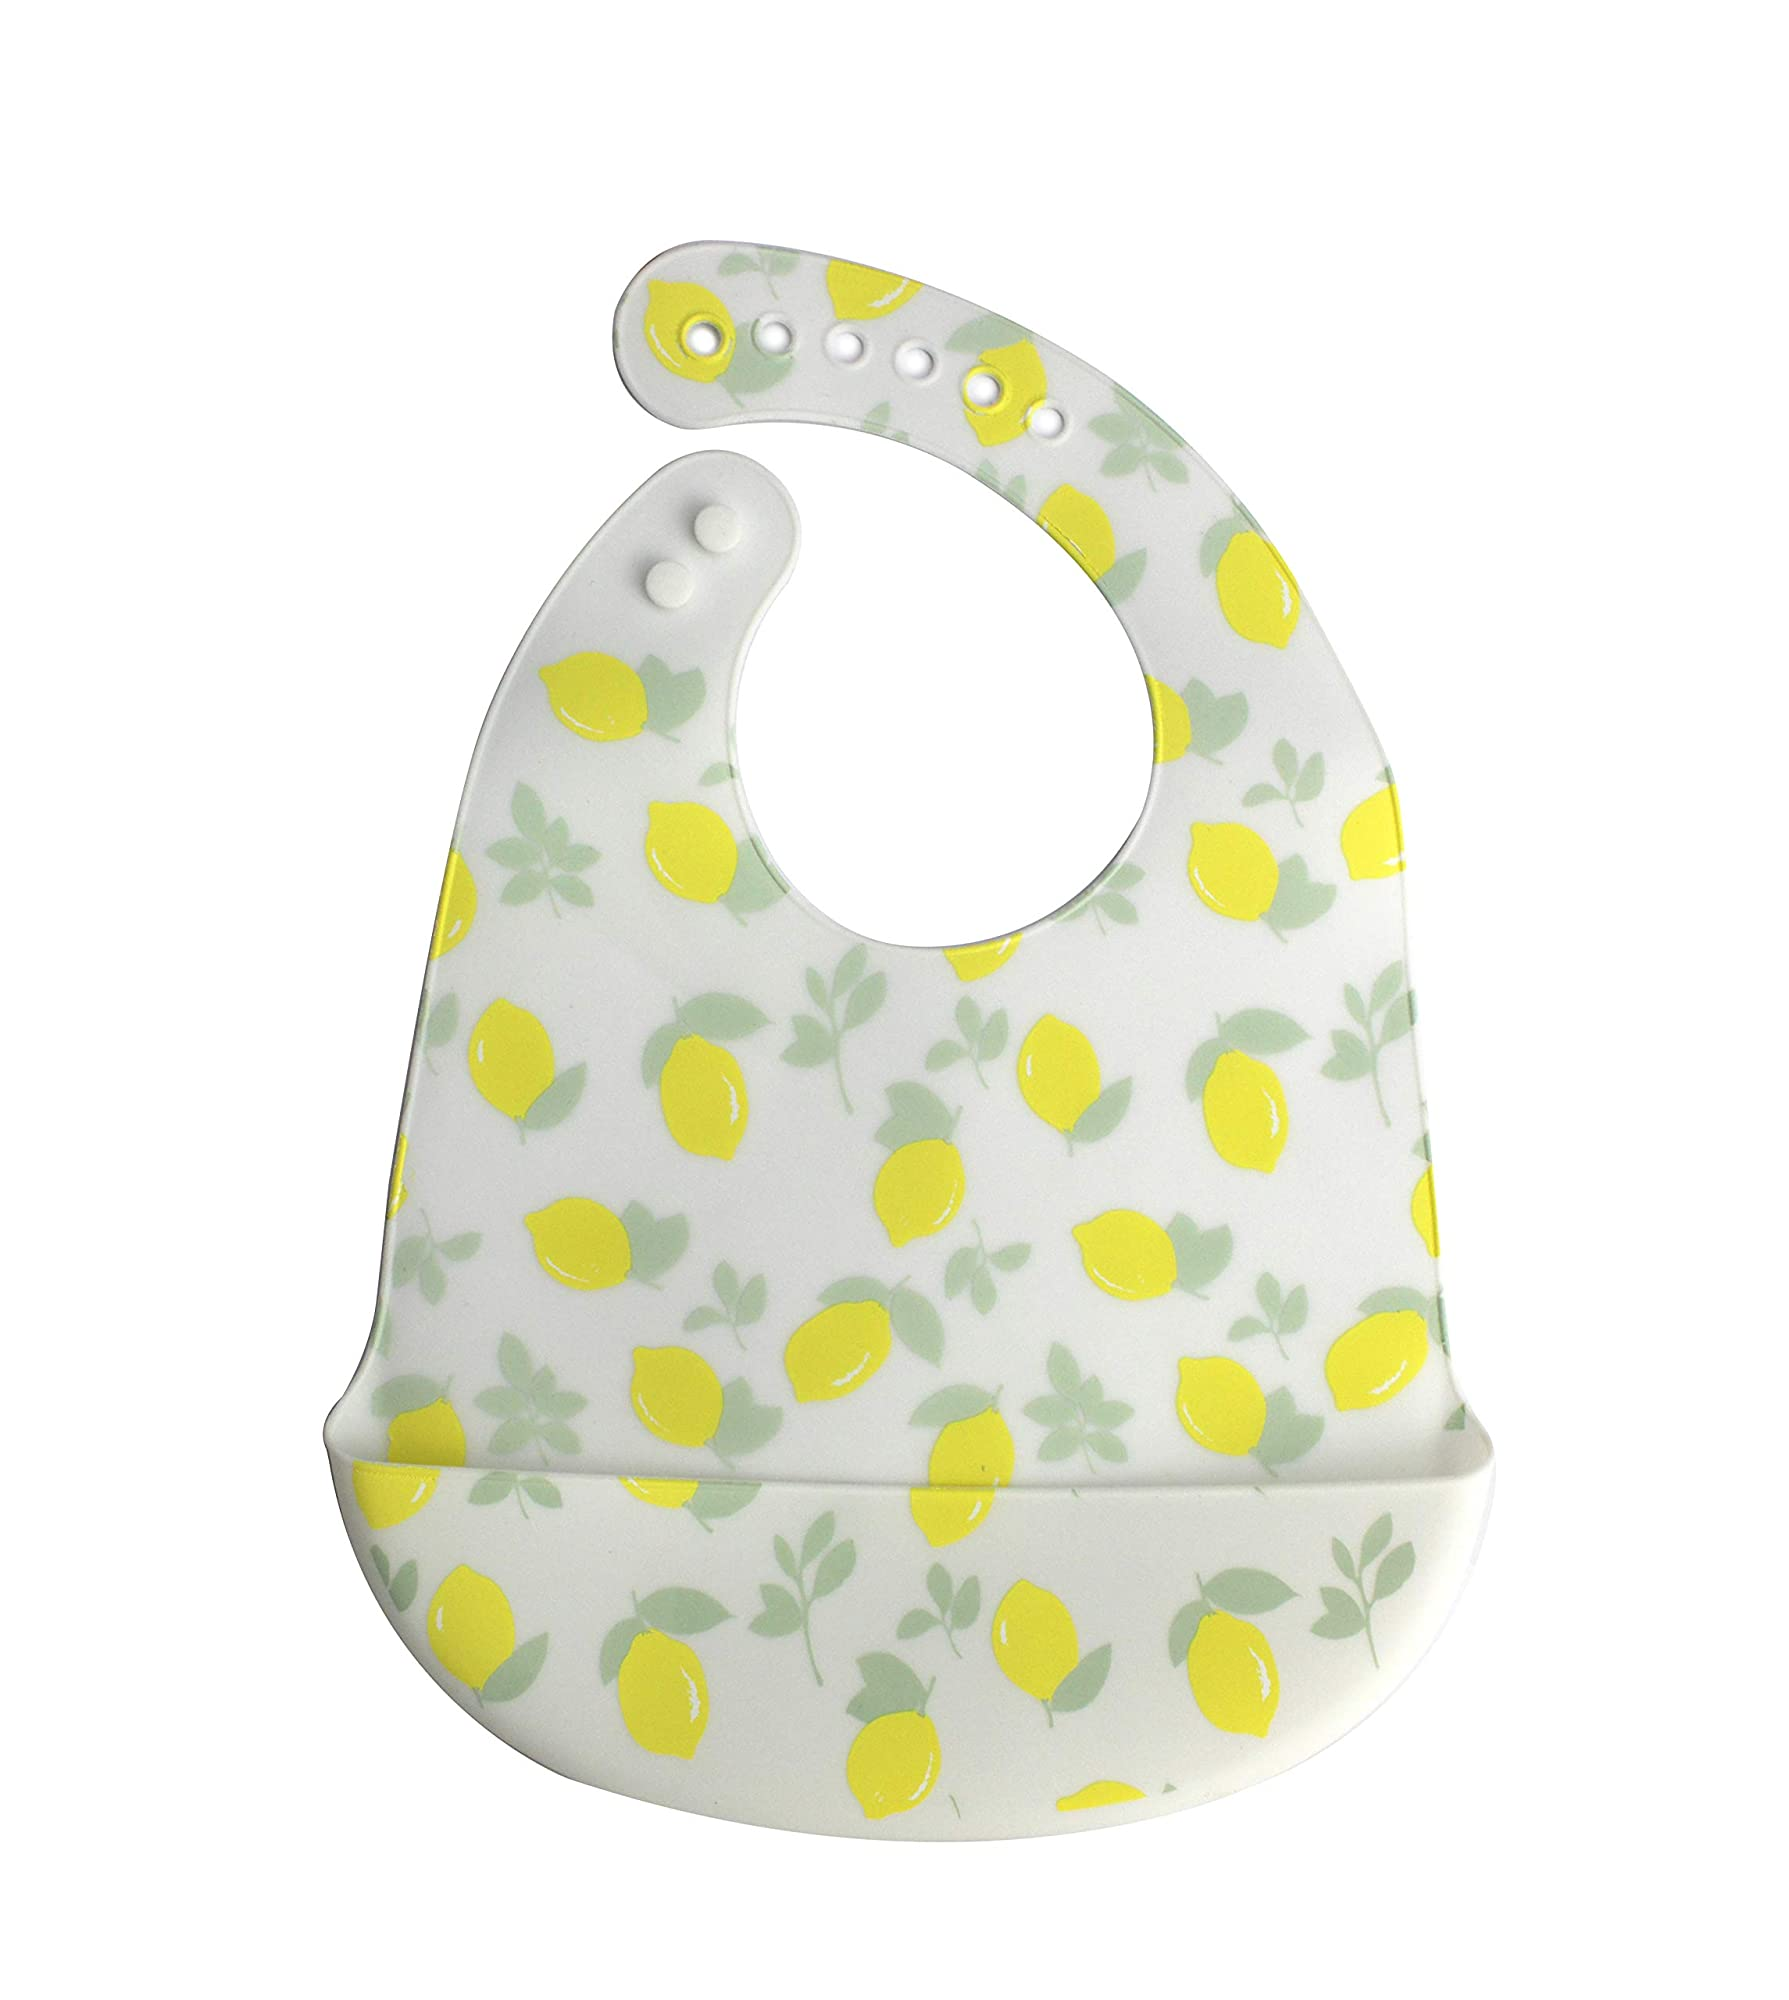 Silicone Bibs With Adjustable Straps